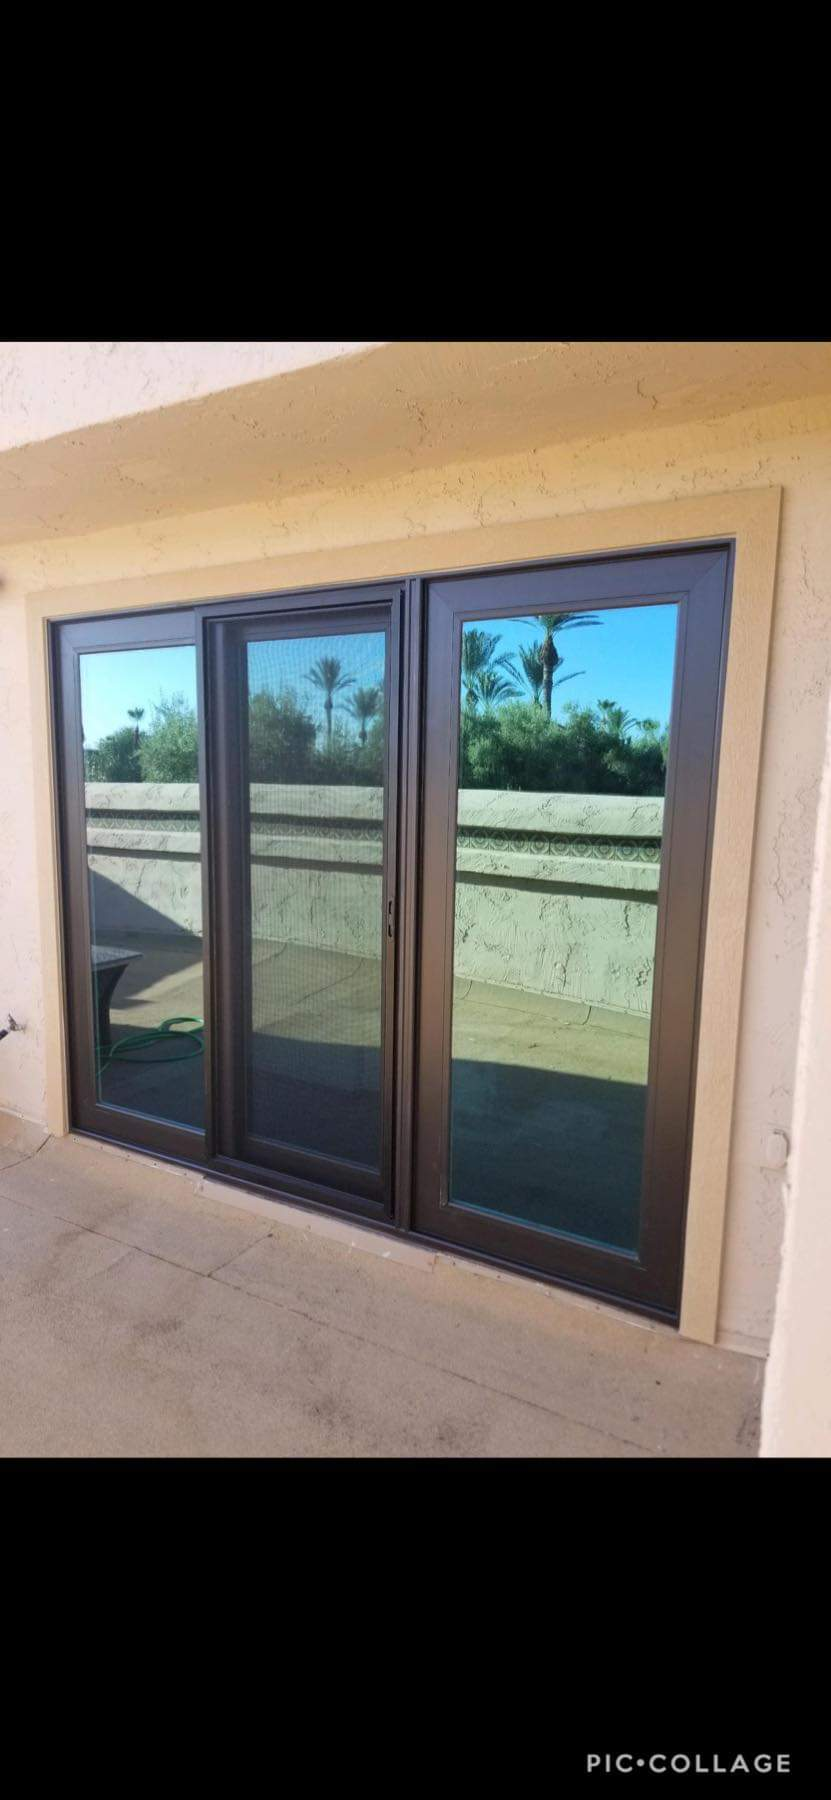 Arizona Window and Door in Scottsdale and Tucson showing multipanel door